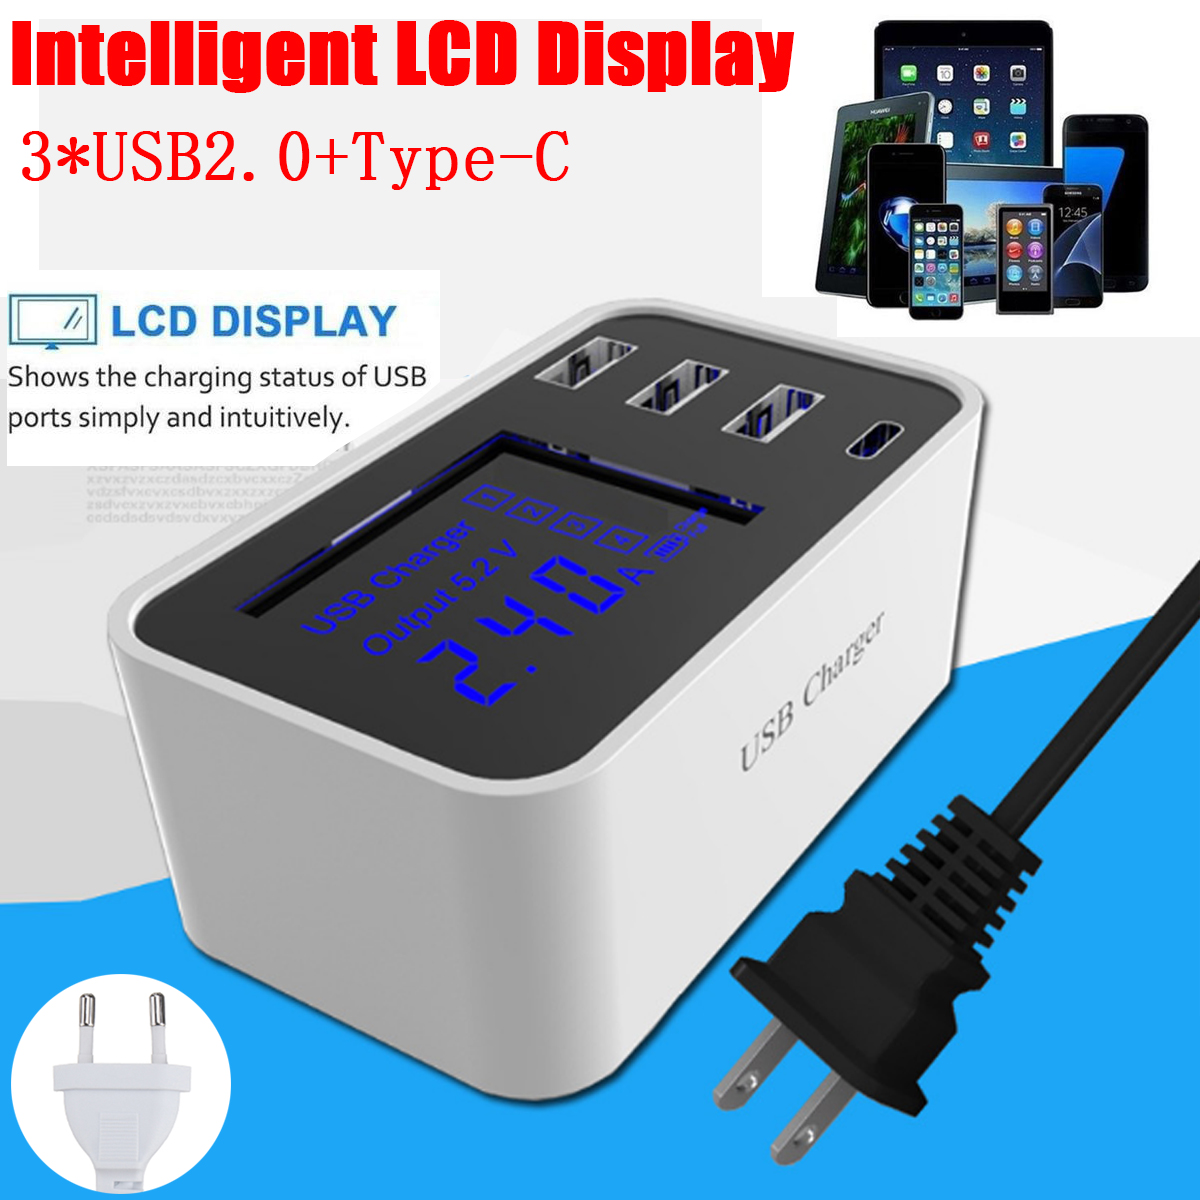 3 USB 2.0 Type C Smart IC LCD Display Charging Station Adapter Desktop Wall Charger for Smartphone